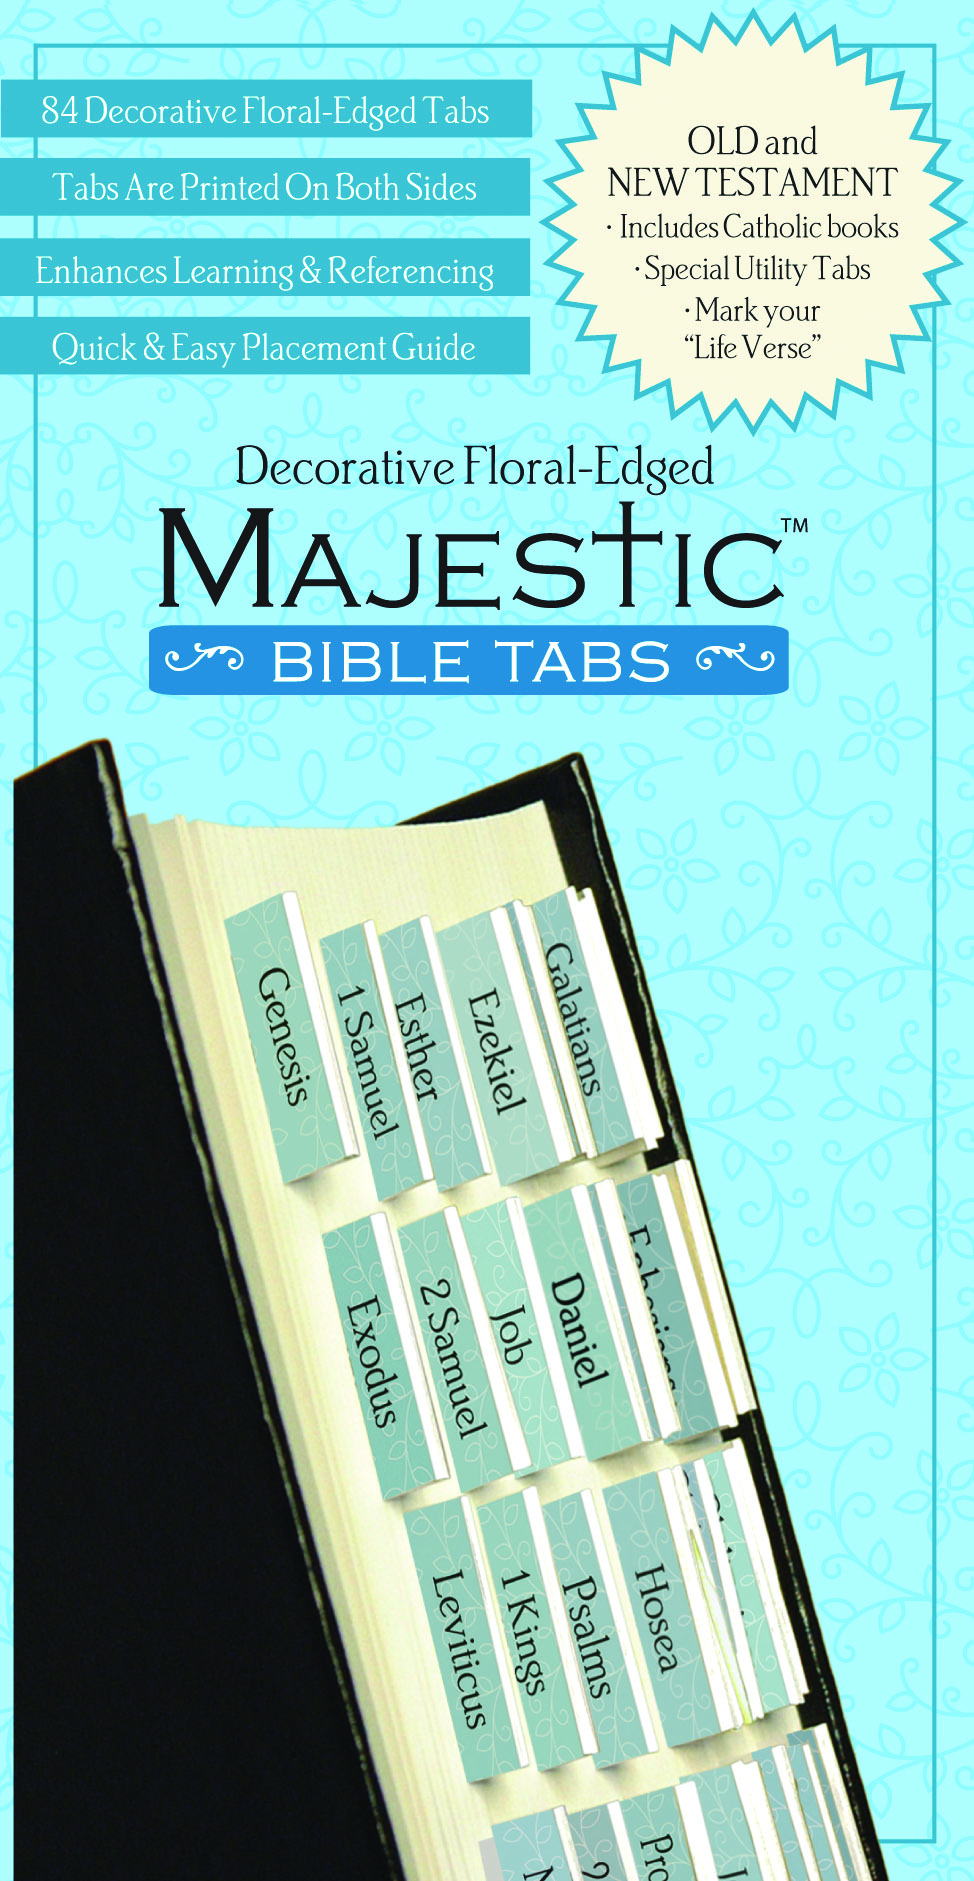 Decorative Floral Edged Bible Tabs